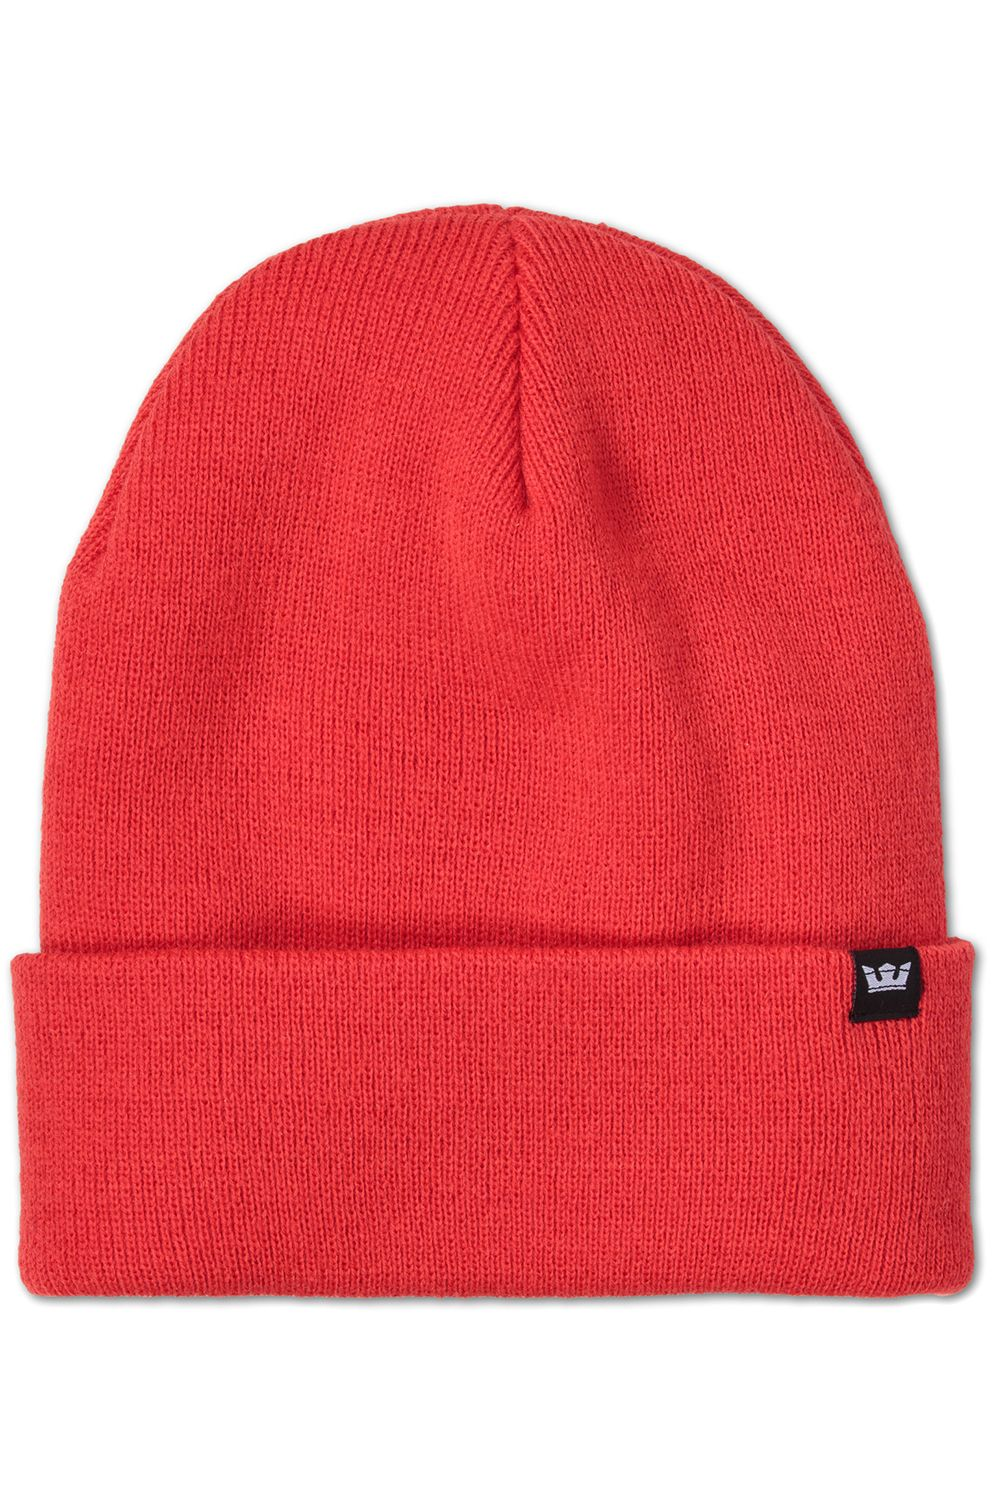 Supra Beanie CROWN Red